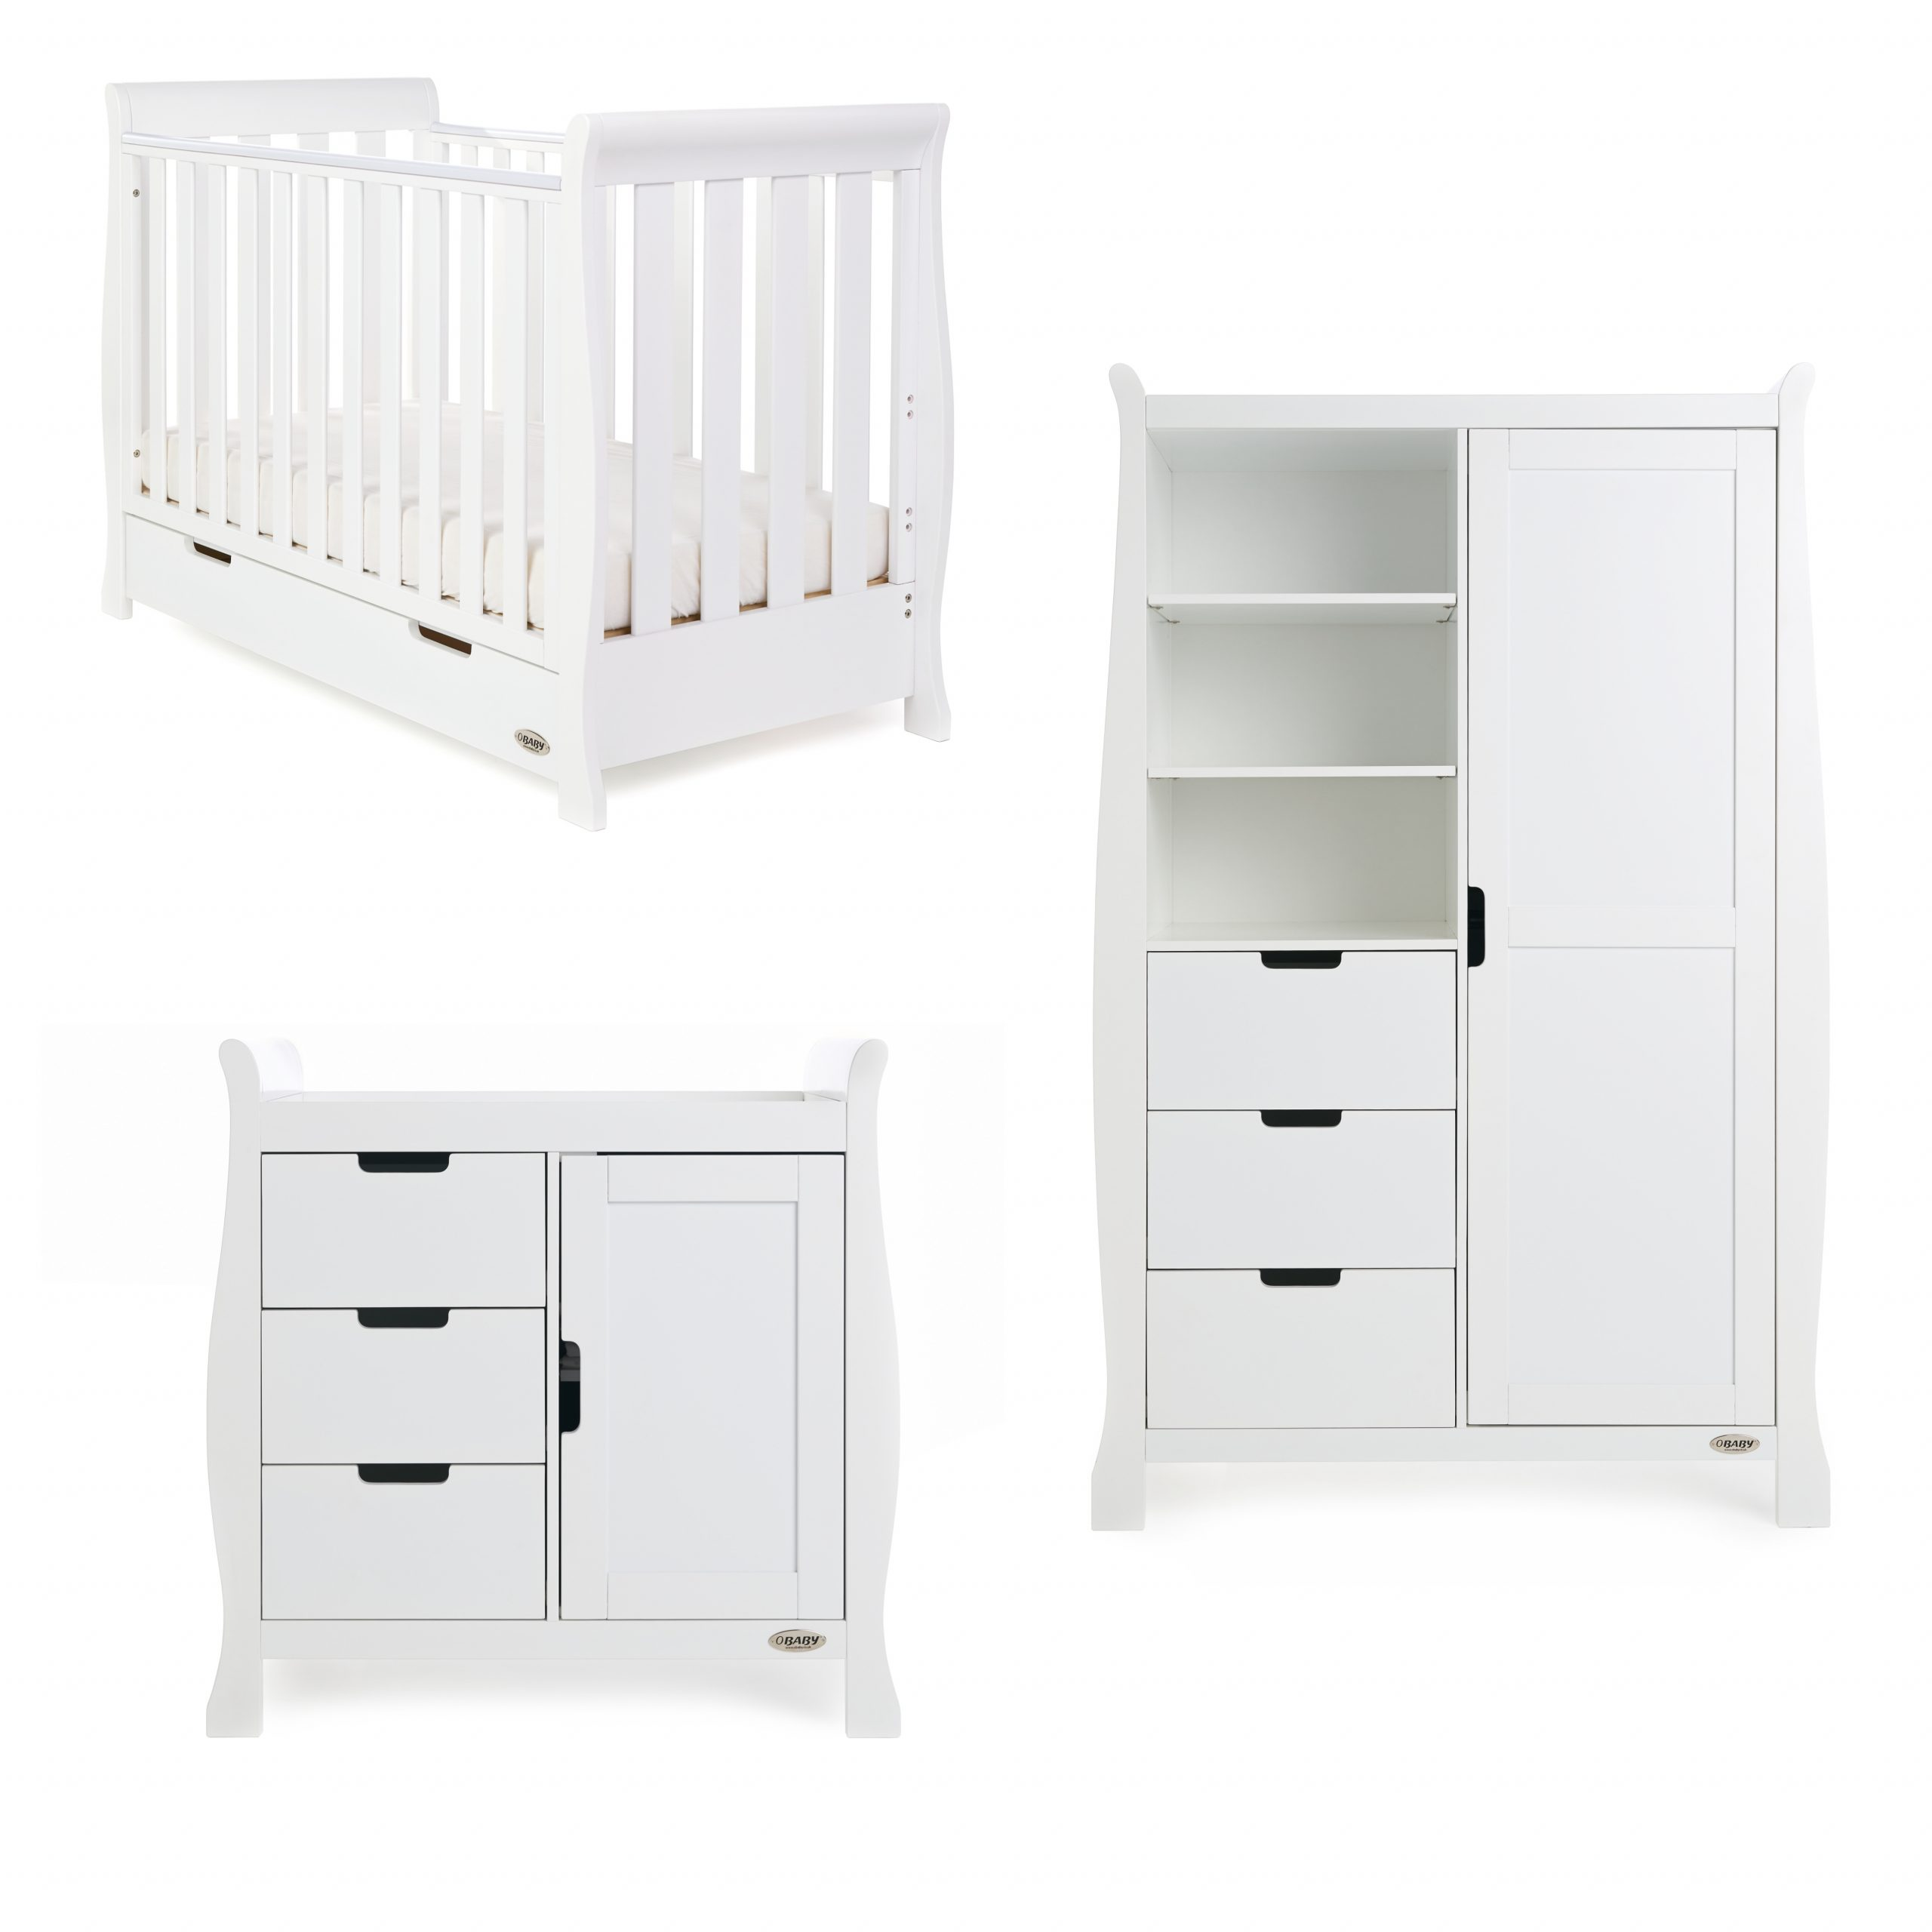 Obaby Stamford Mini Sleigh 3 Piece Room Set - White - EASTER OFFER